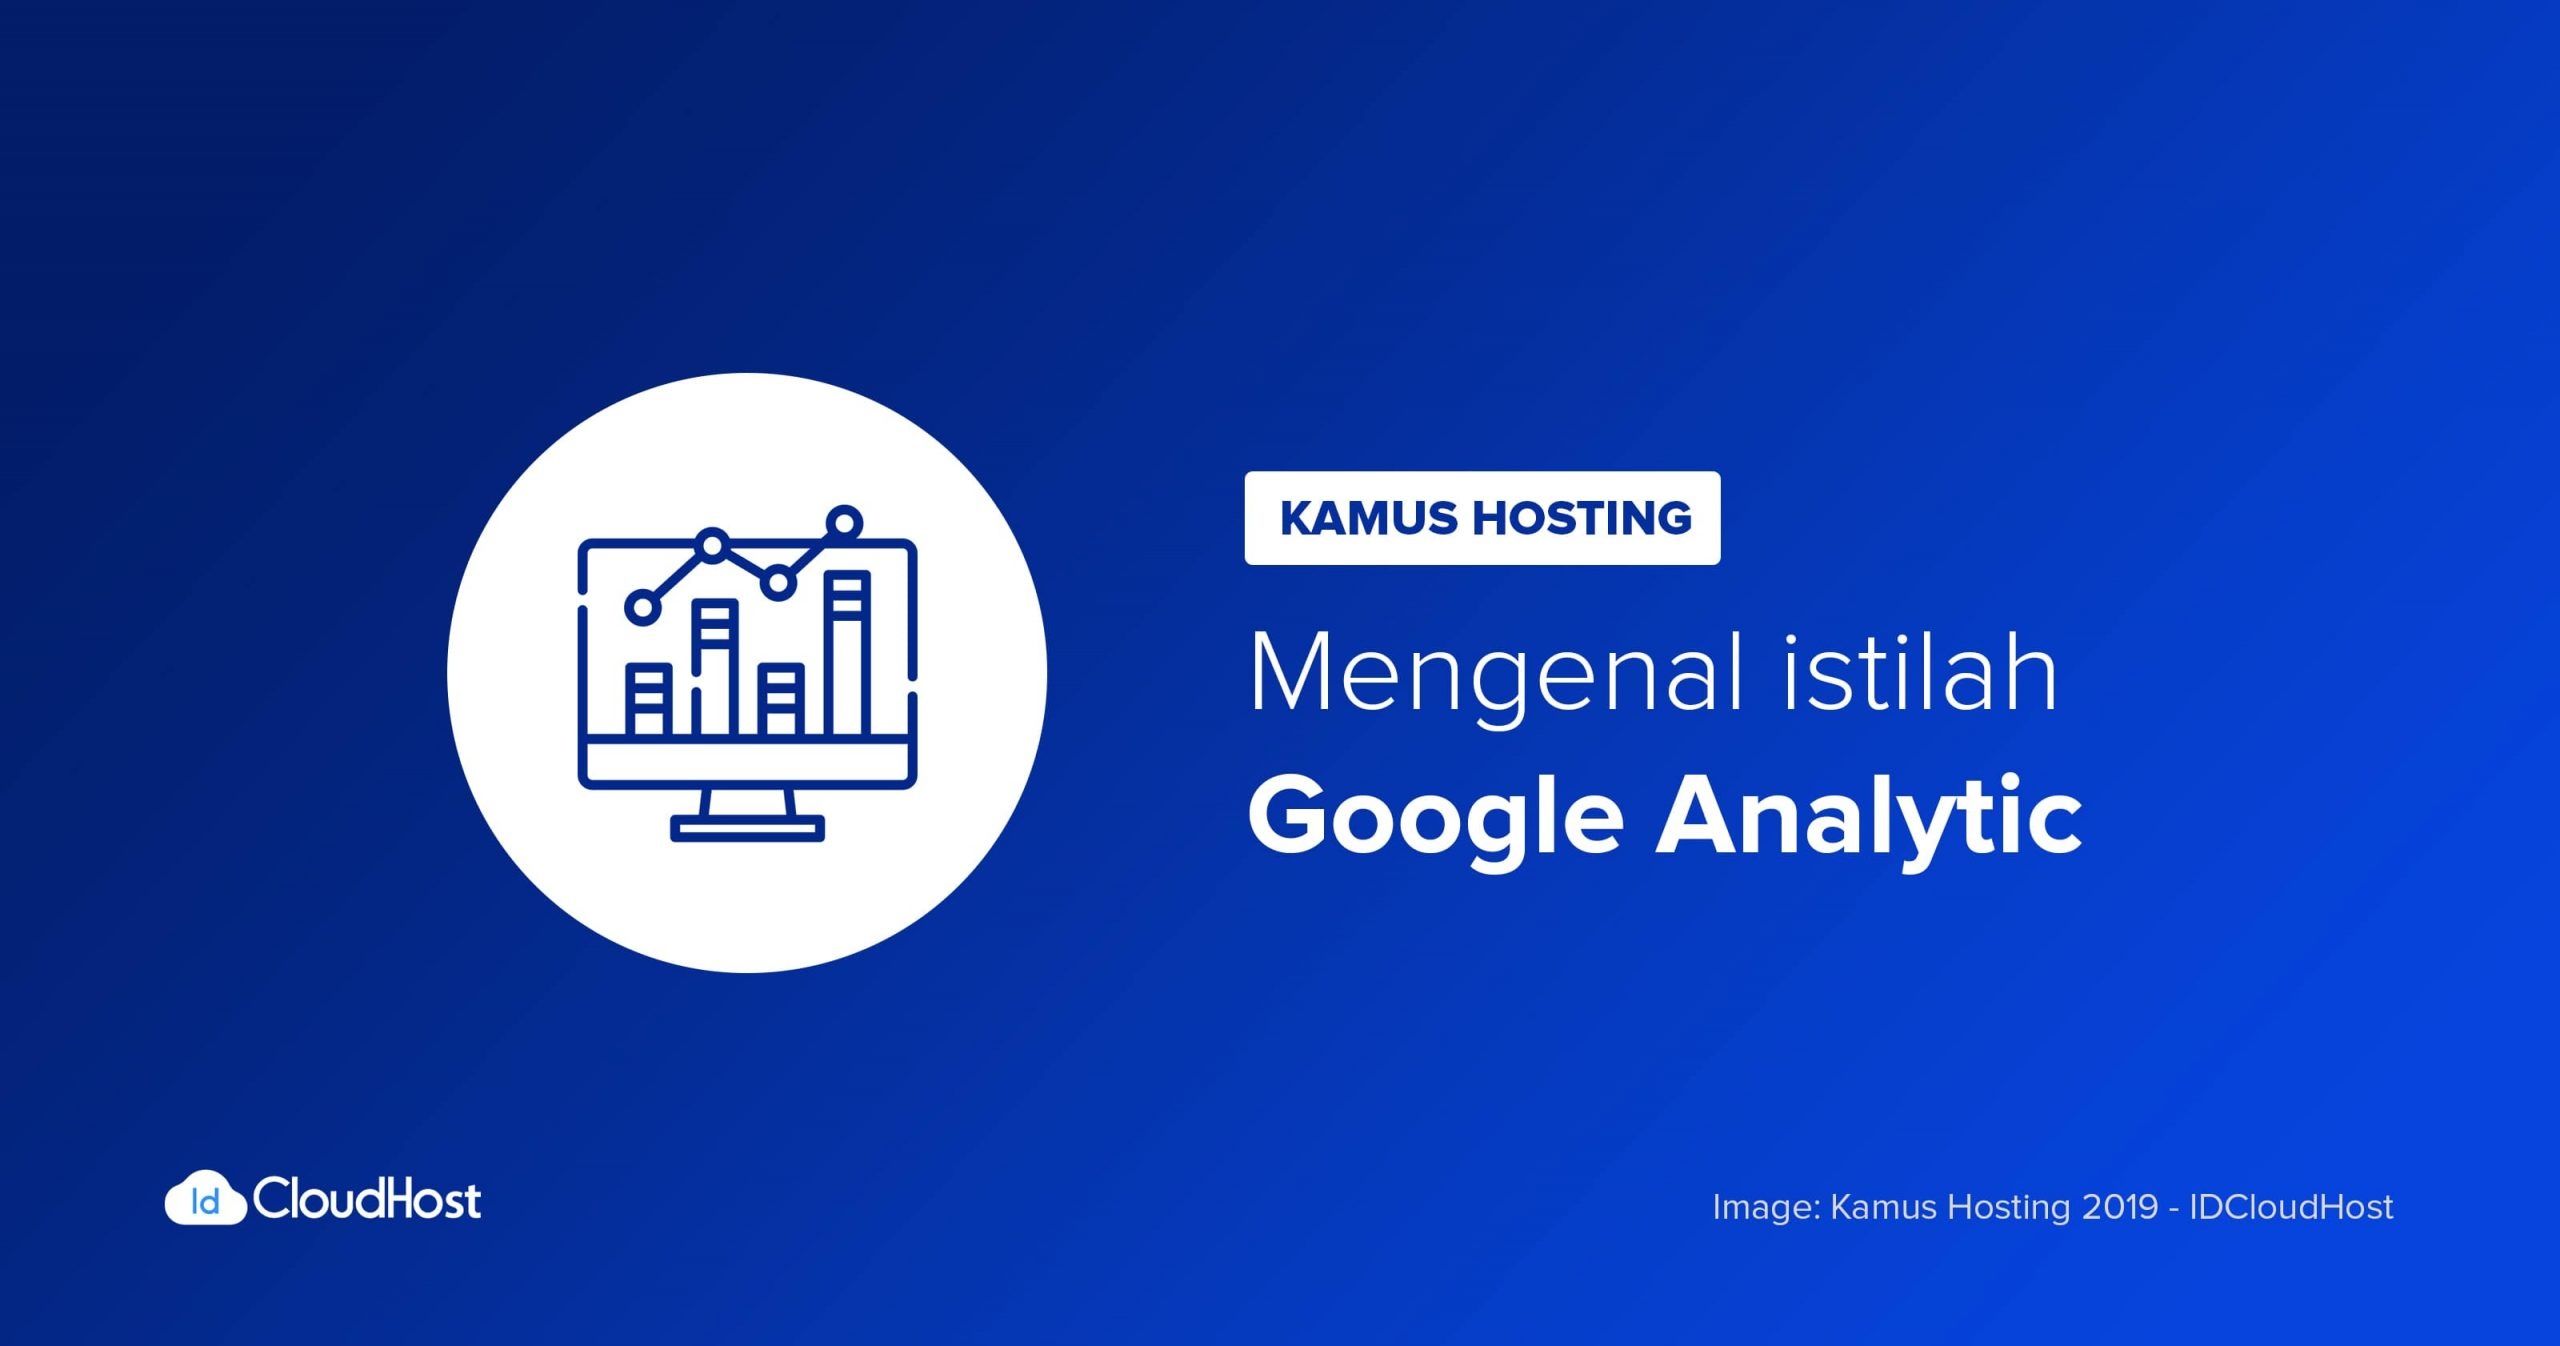 Google Analytic